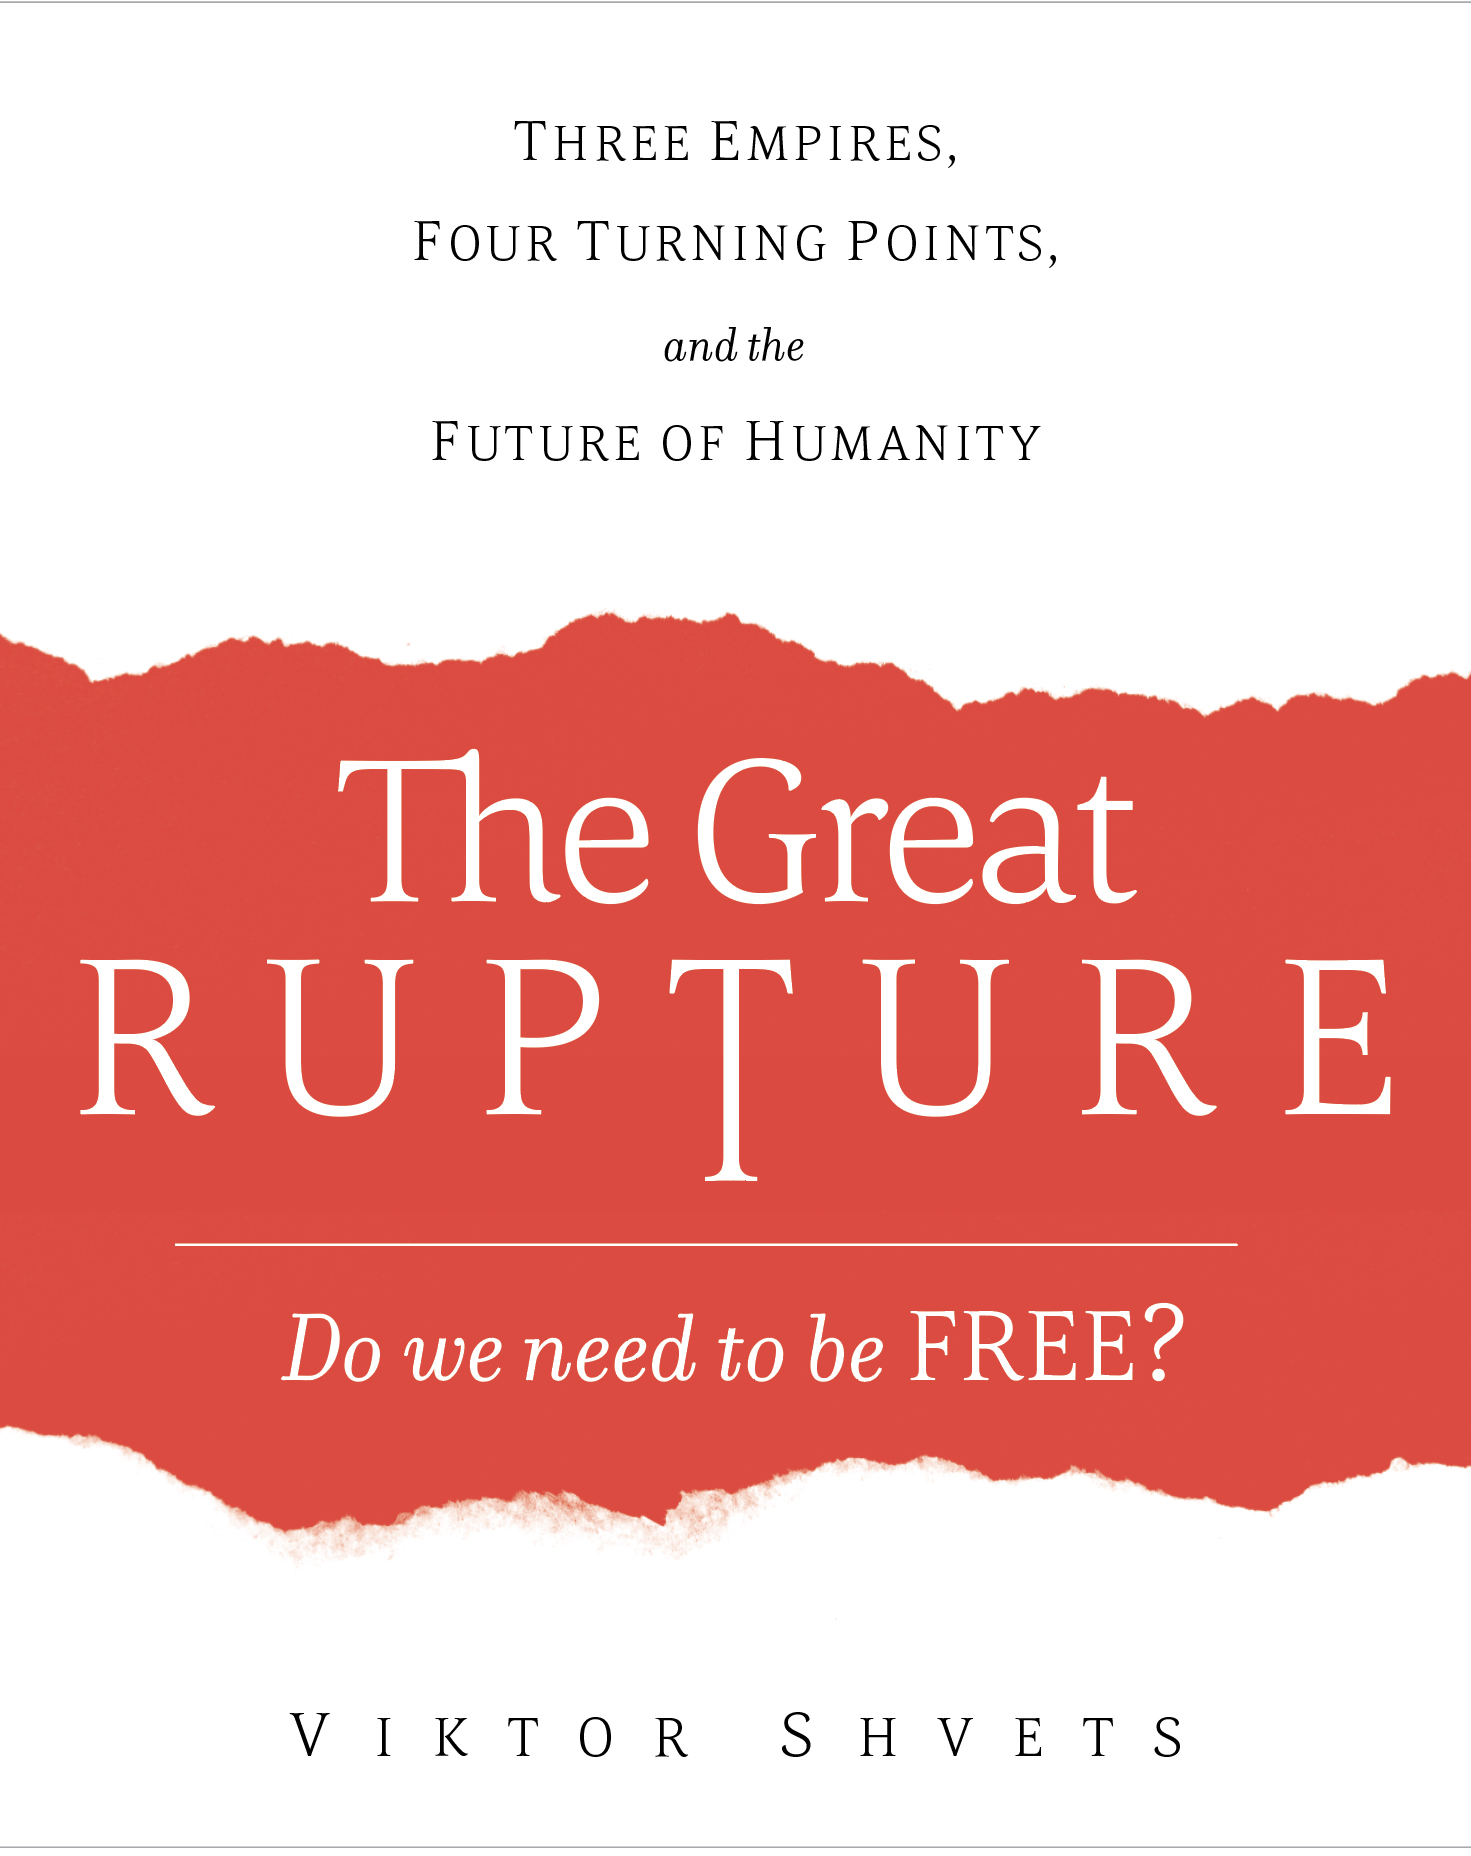 The Great Rupture